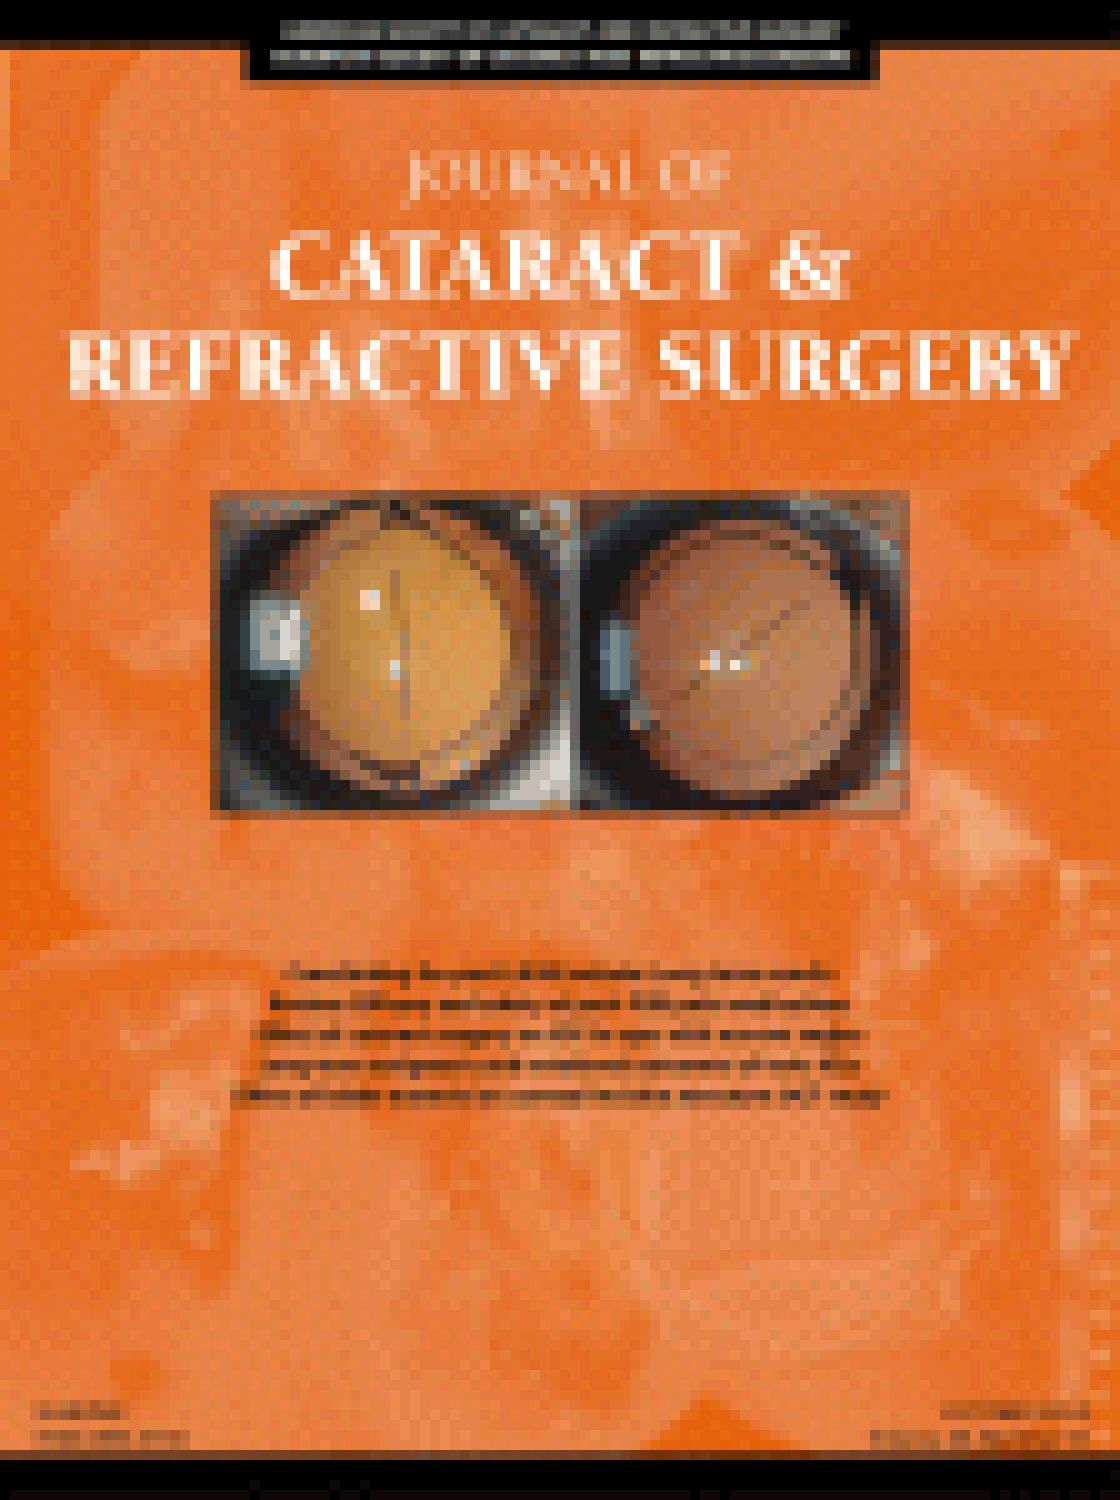 Influence of posterior corneal astigmatism on total corneal astigmatism in eyes with moderate-to-high astigmatism